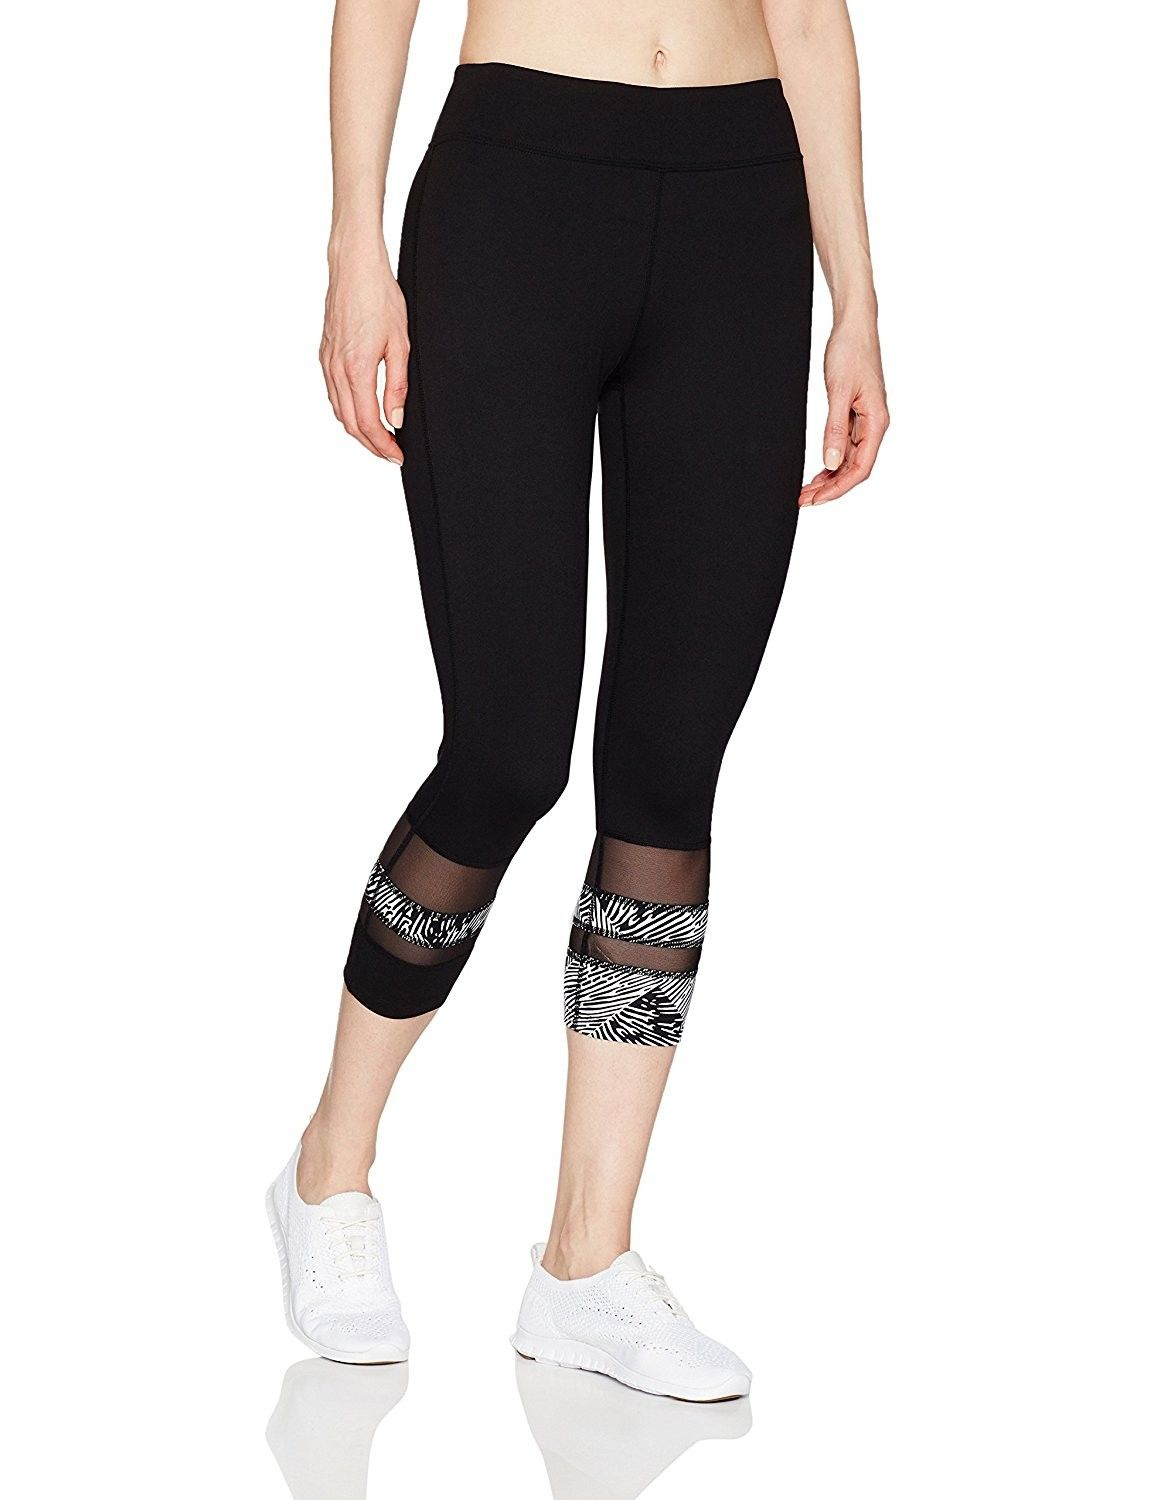 23d146af56c1d Womens Long Board Capri - Reef - CO12GK9RPDL,Women's Clothing, Active,  Active Pants #women #clothing #fashion #style #sexy #outfits #Active Pants